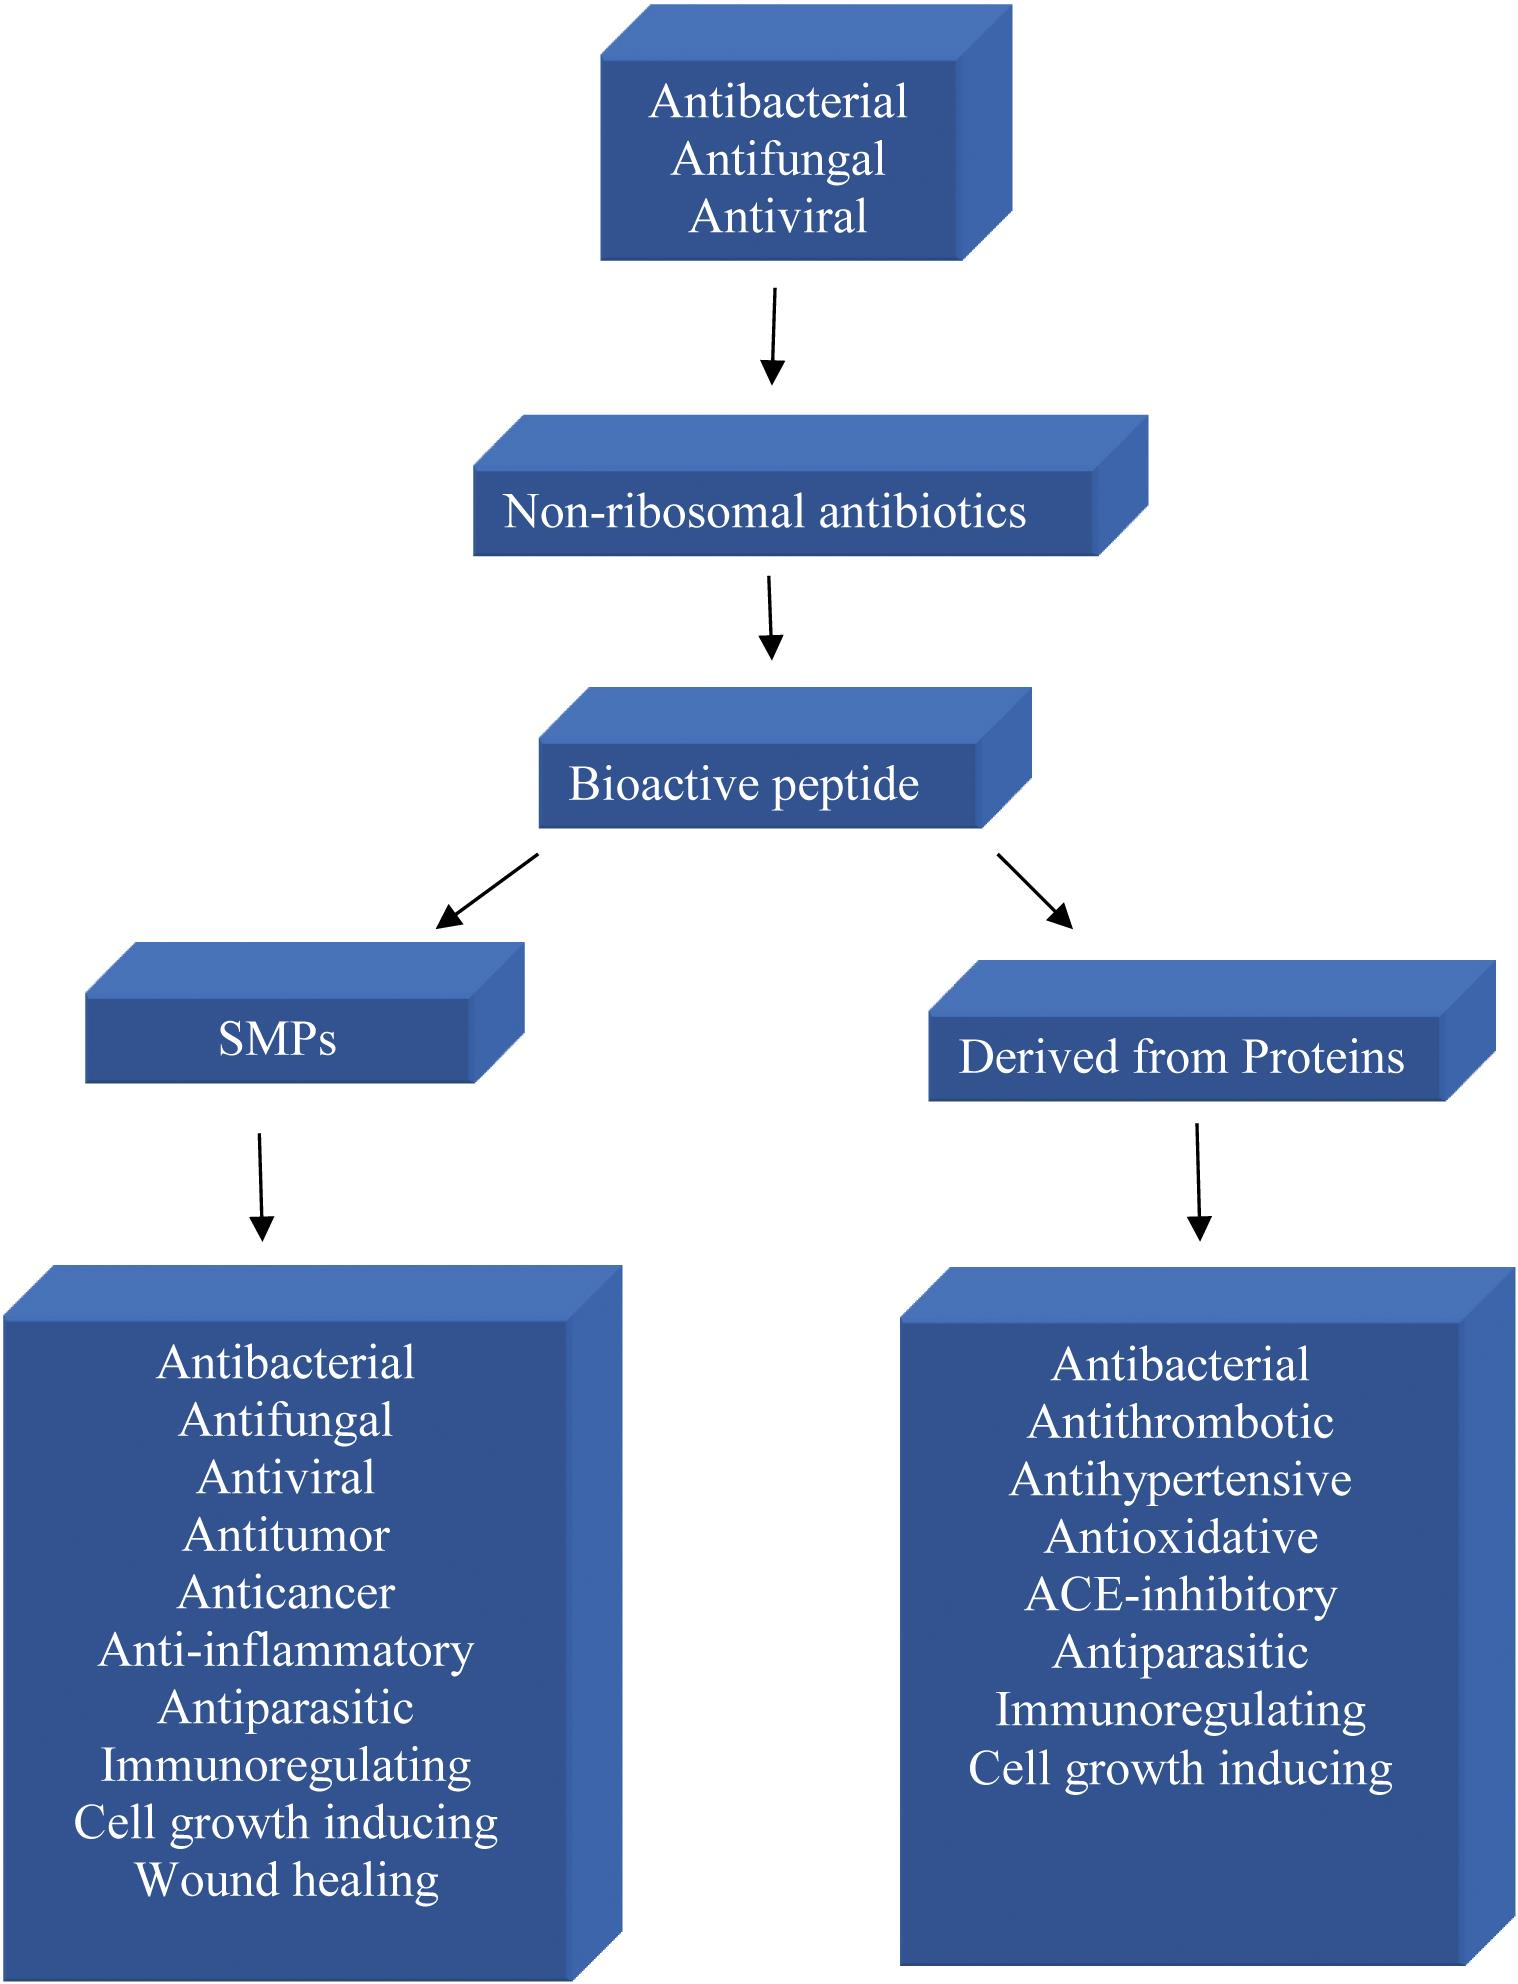 Different types of small bioactive peptides and their activities.